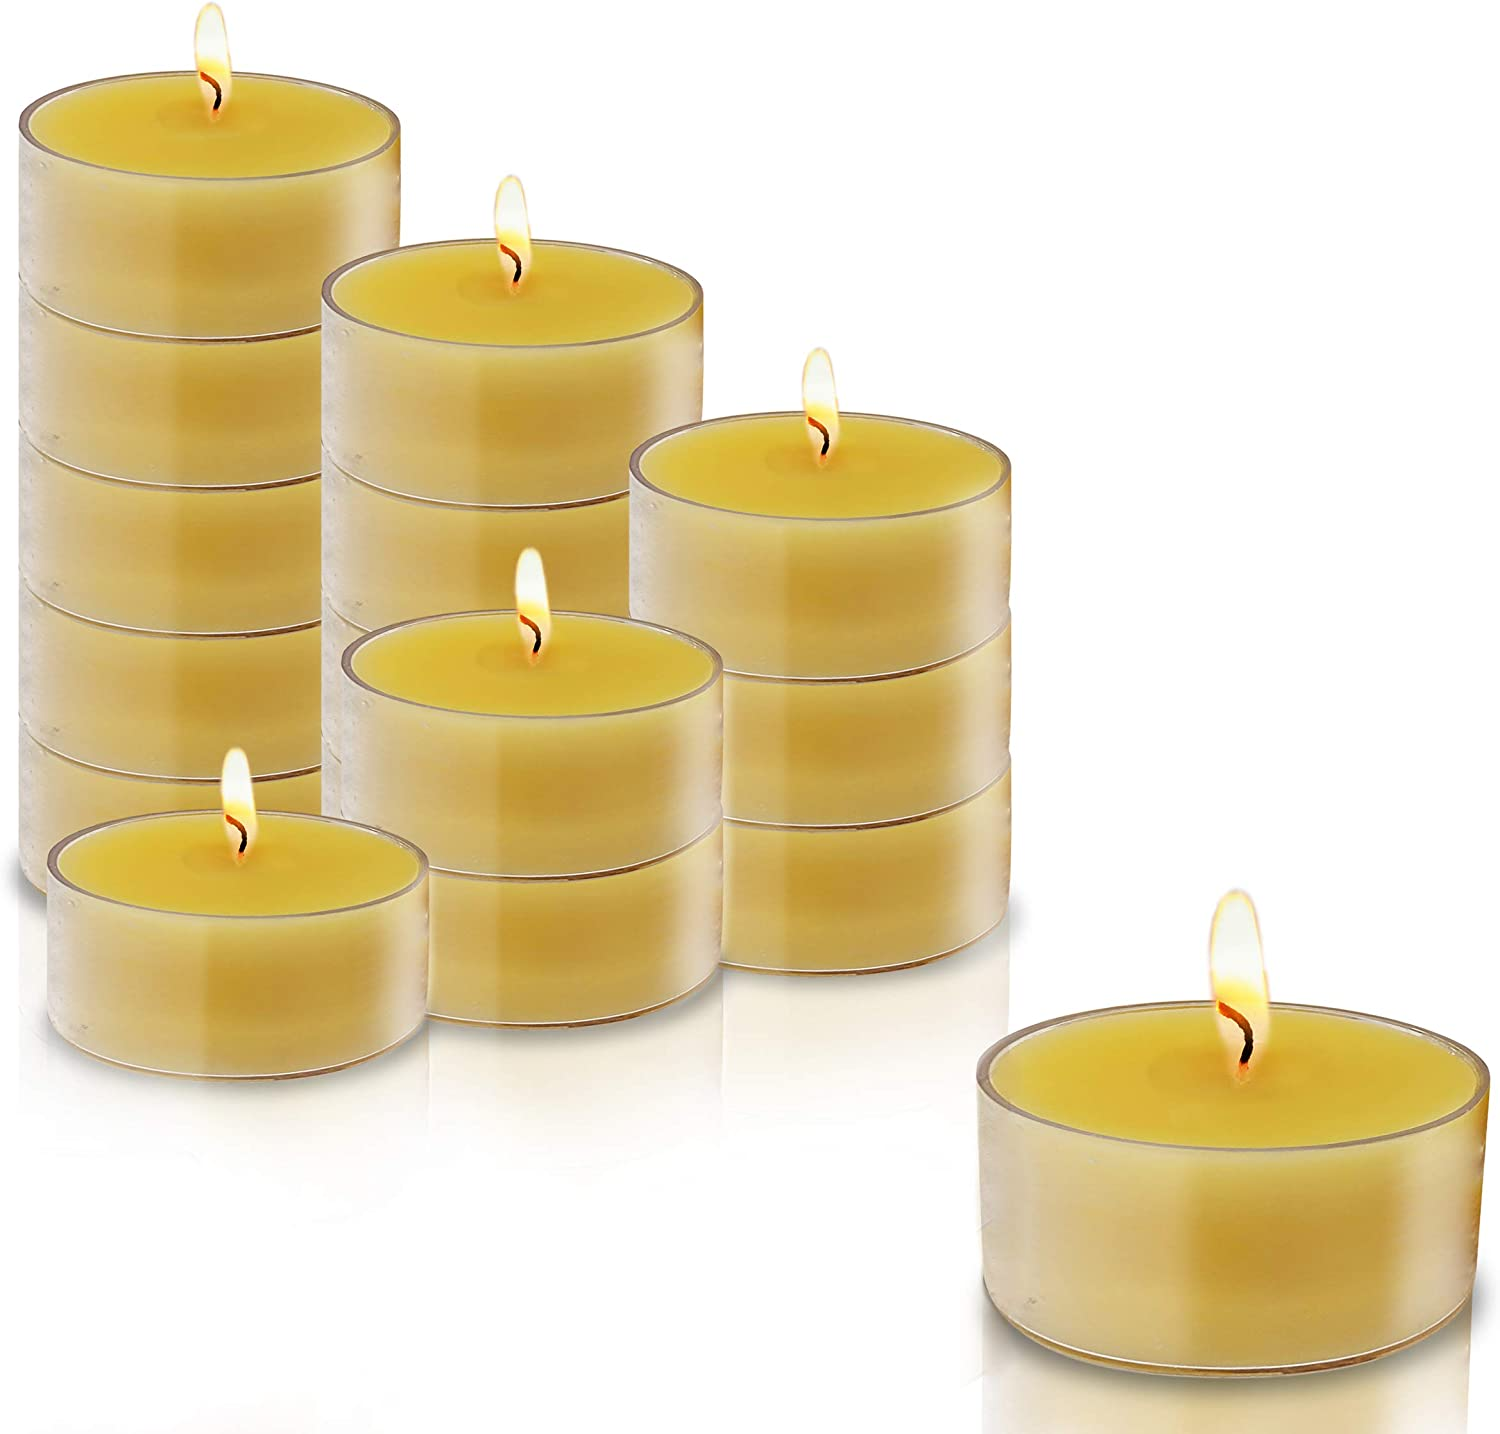 Ner Mitzvah Pure Beeswax Tealight Candles 24 2021new shipping free shipping P - Handmade USA List price in